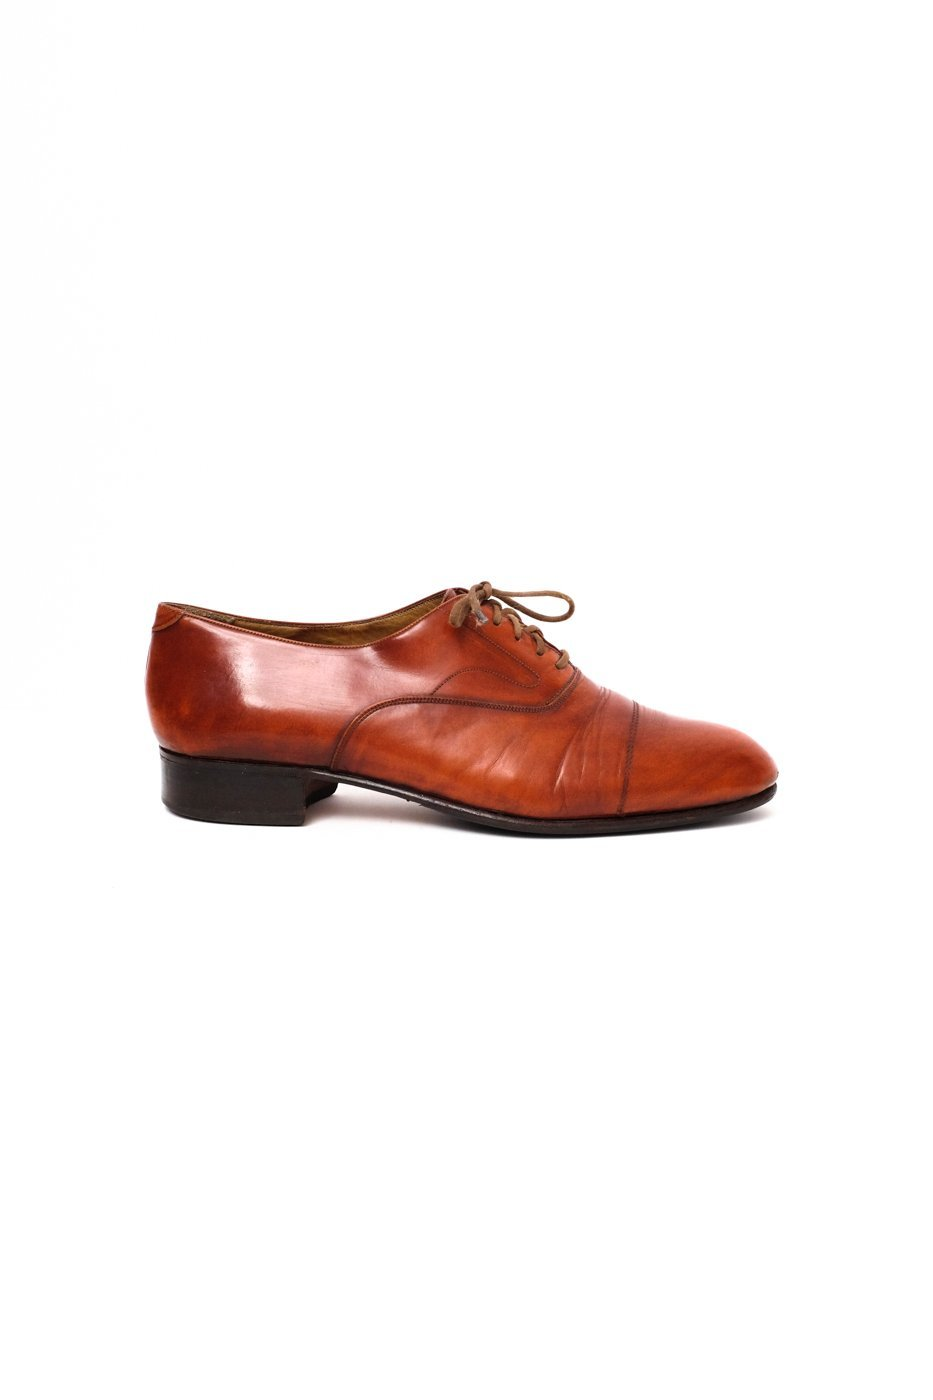 0522_COGNAC 42 LEATHER OXFORD SHOES